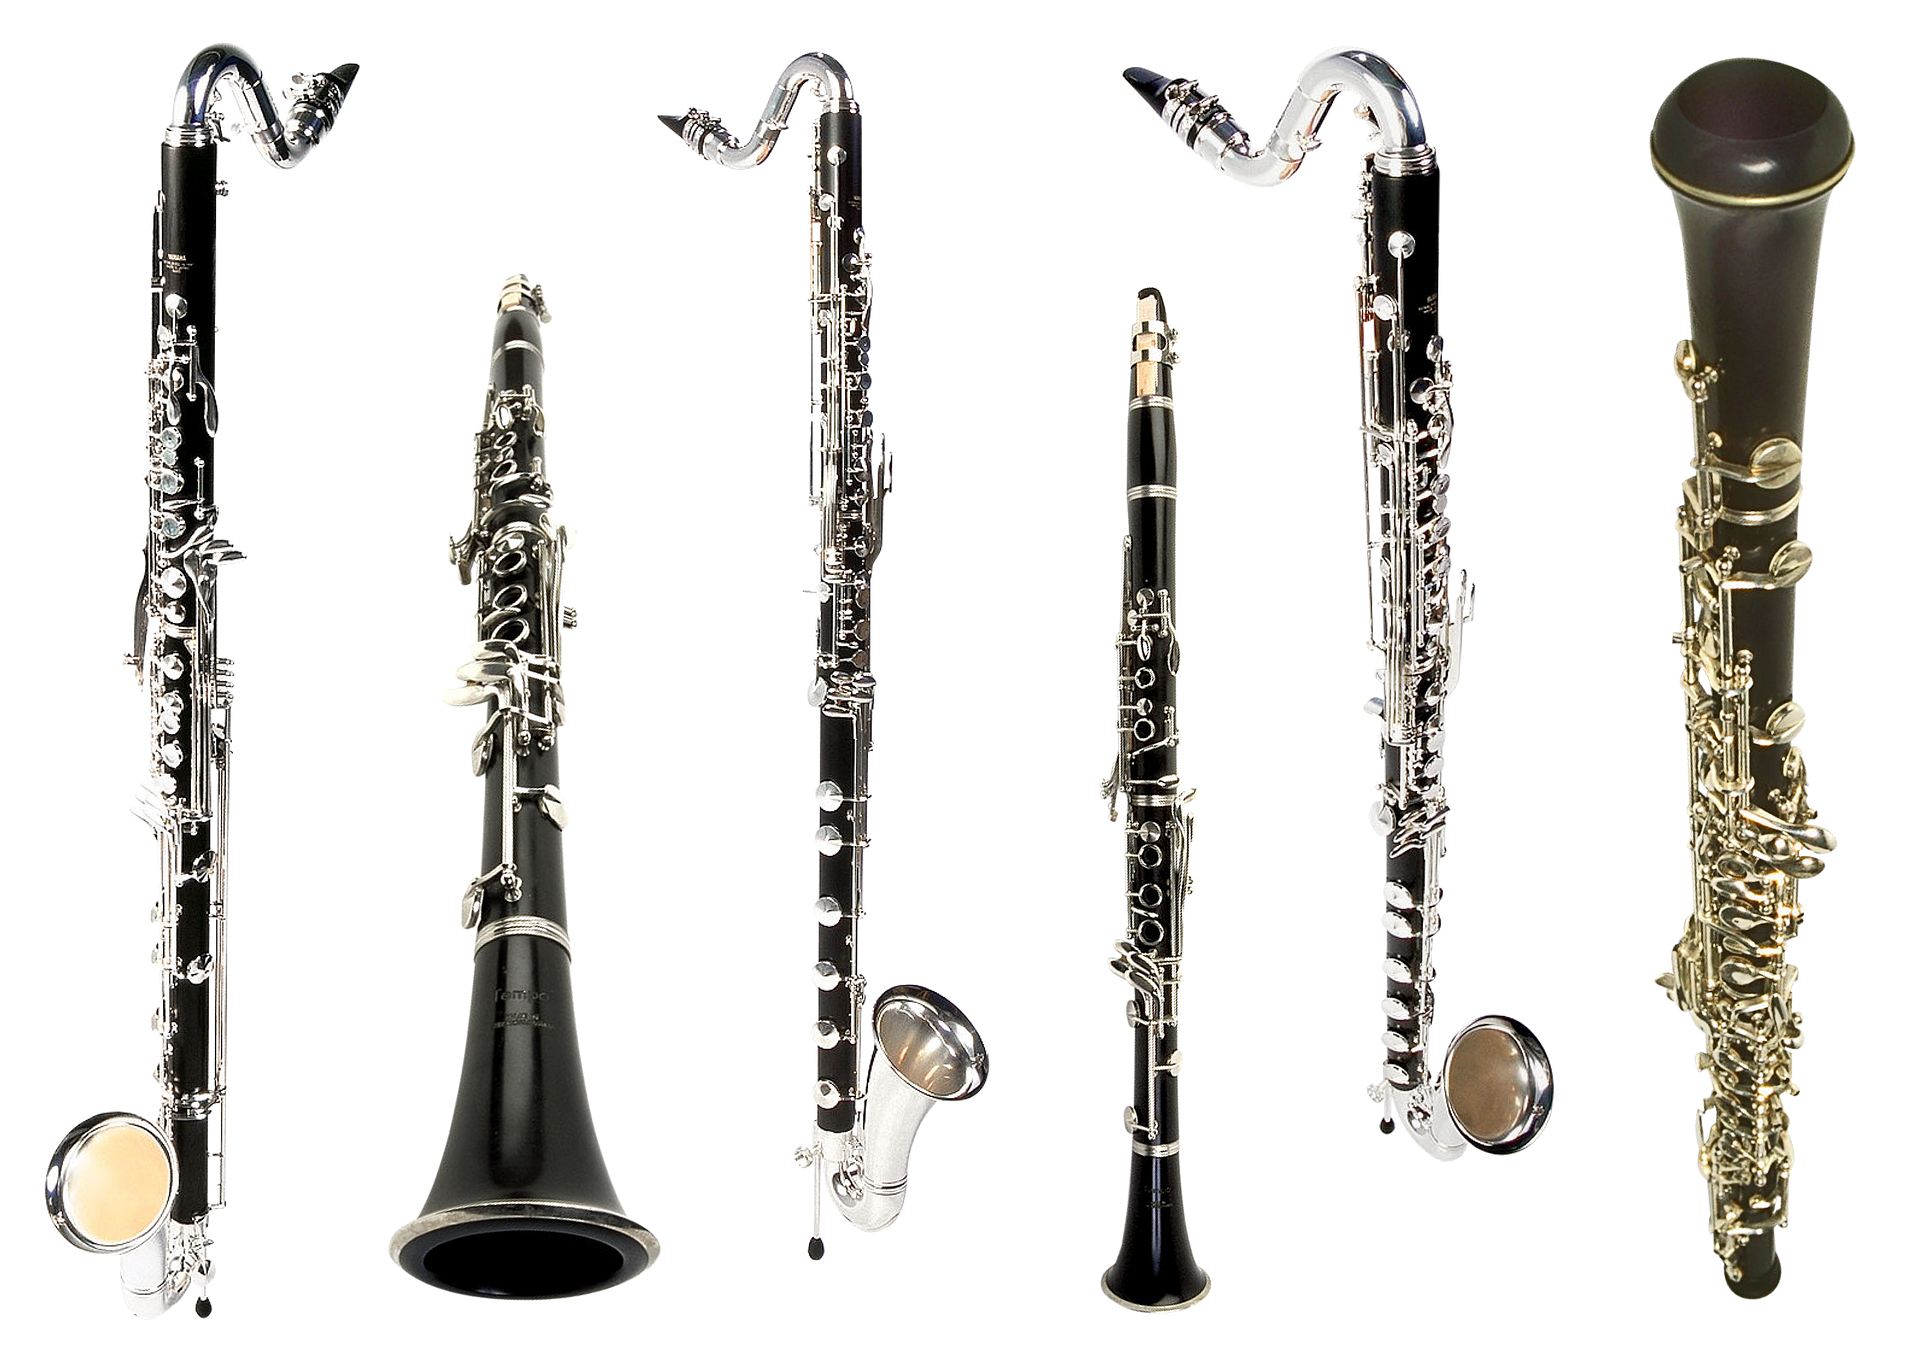 The entire clarinet family of instruments with the bassclarinet